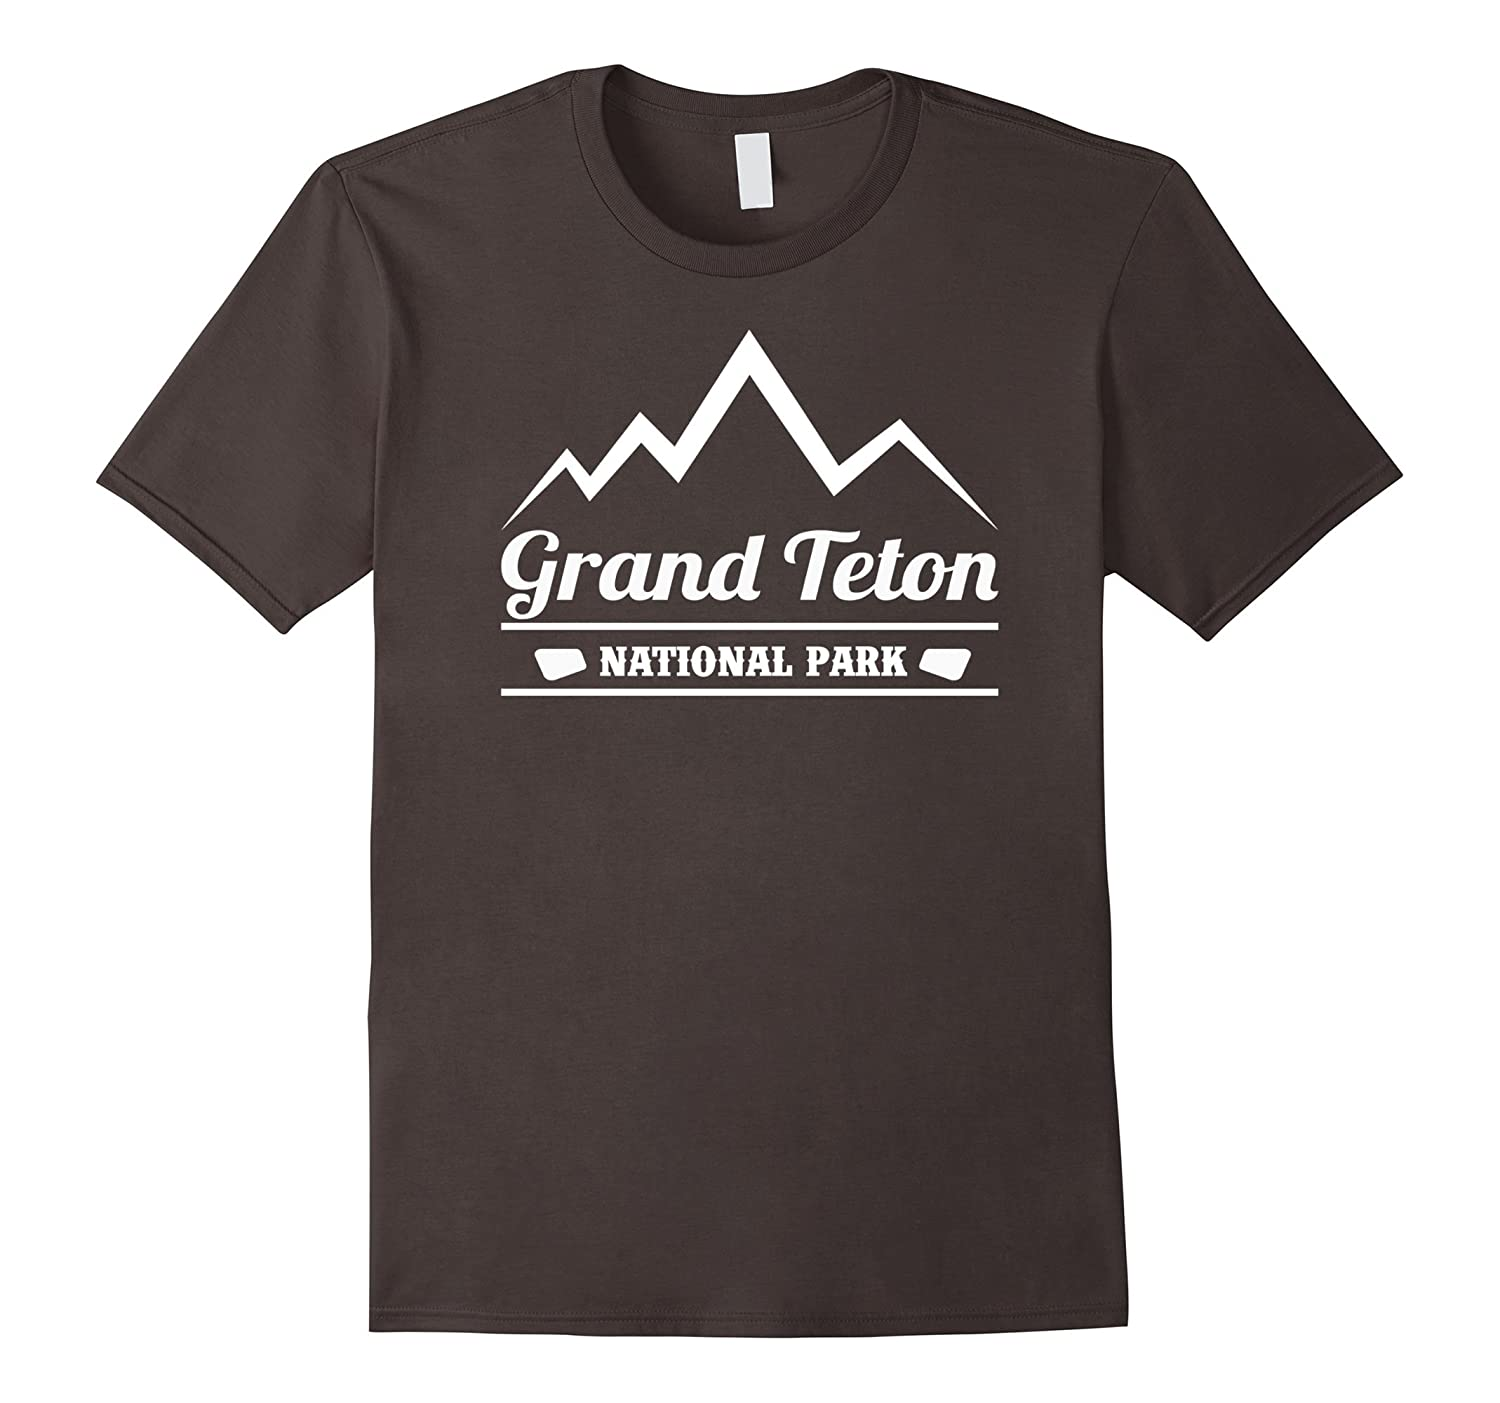 Grand Teton National Park Souvenir Shirt – Mountain tee